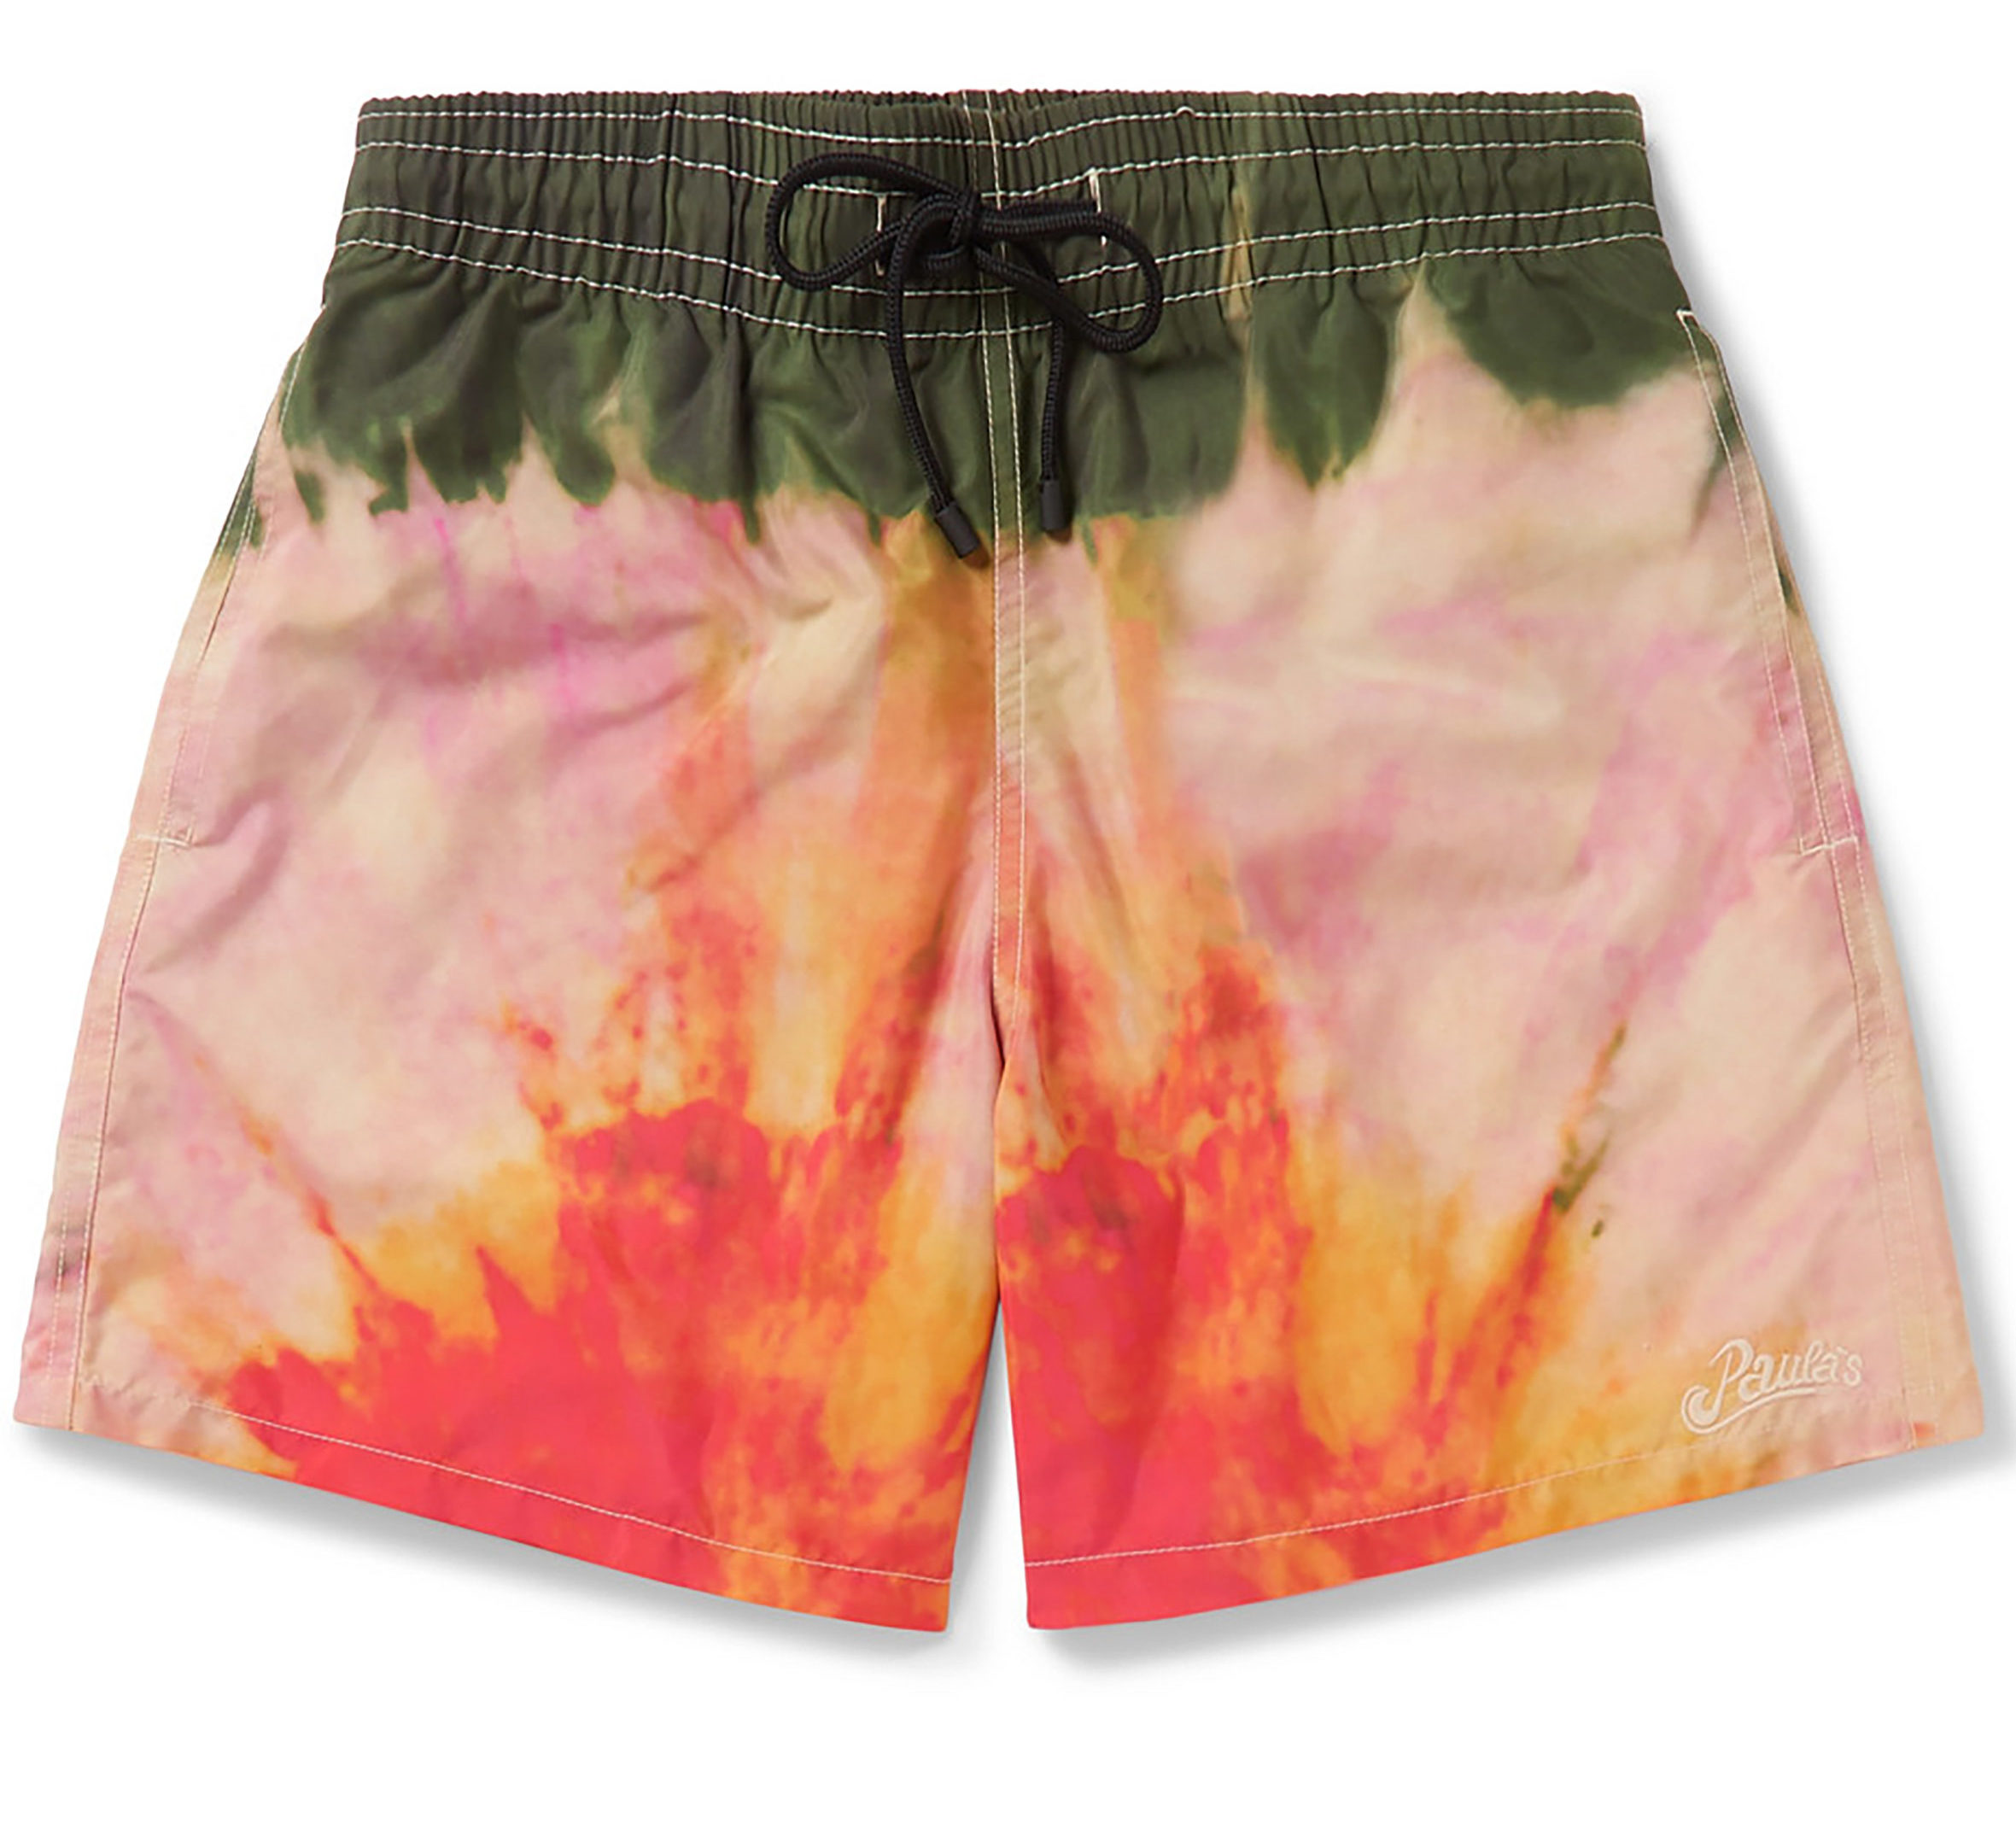 men's swimwear dallas Mr Porter x Loewe exclusive tie-dyed swim shorts, $450, at mrporter.com.